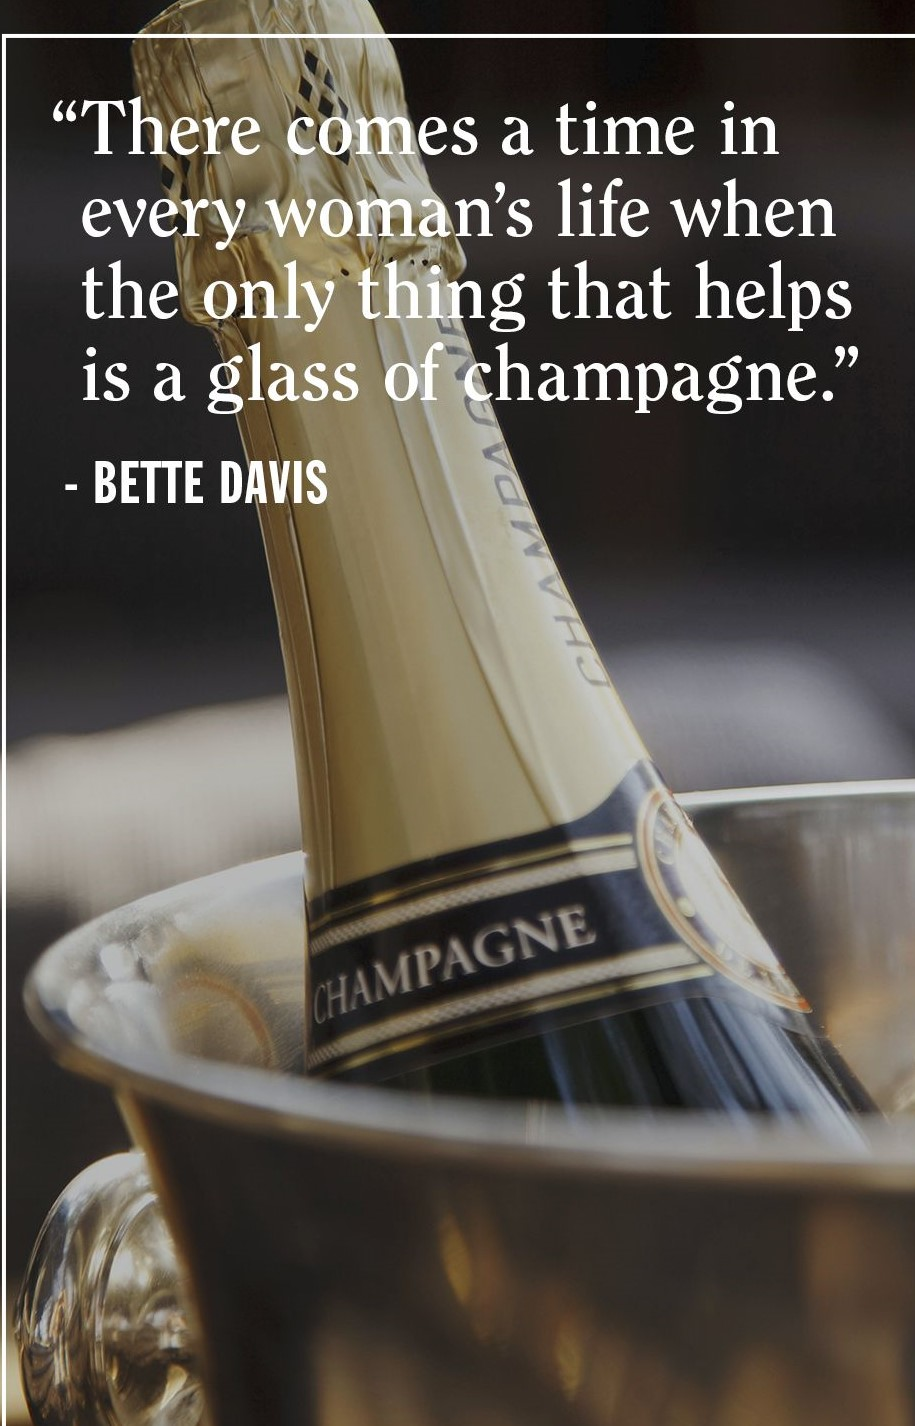 CHAMPAGNE WHISKEY QUOTES